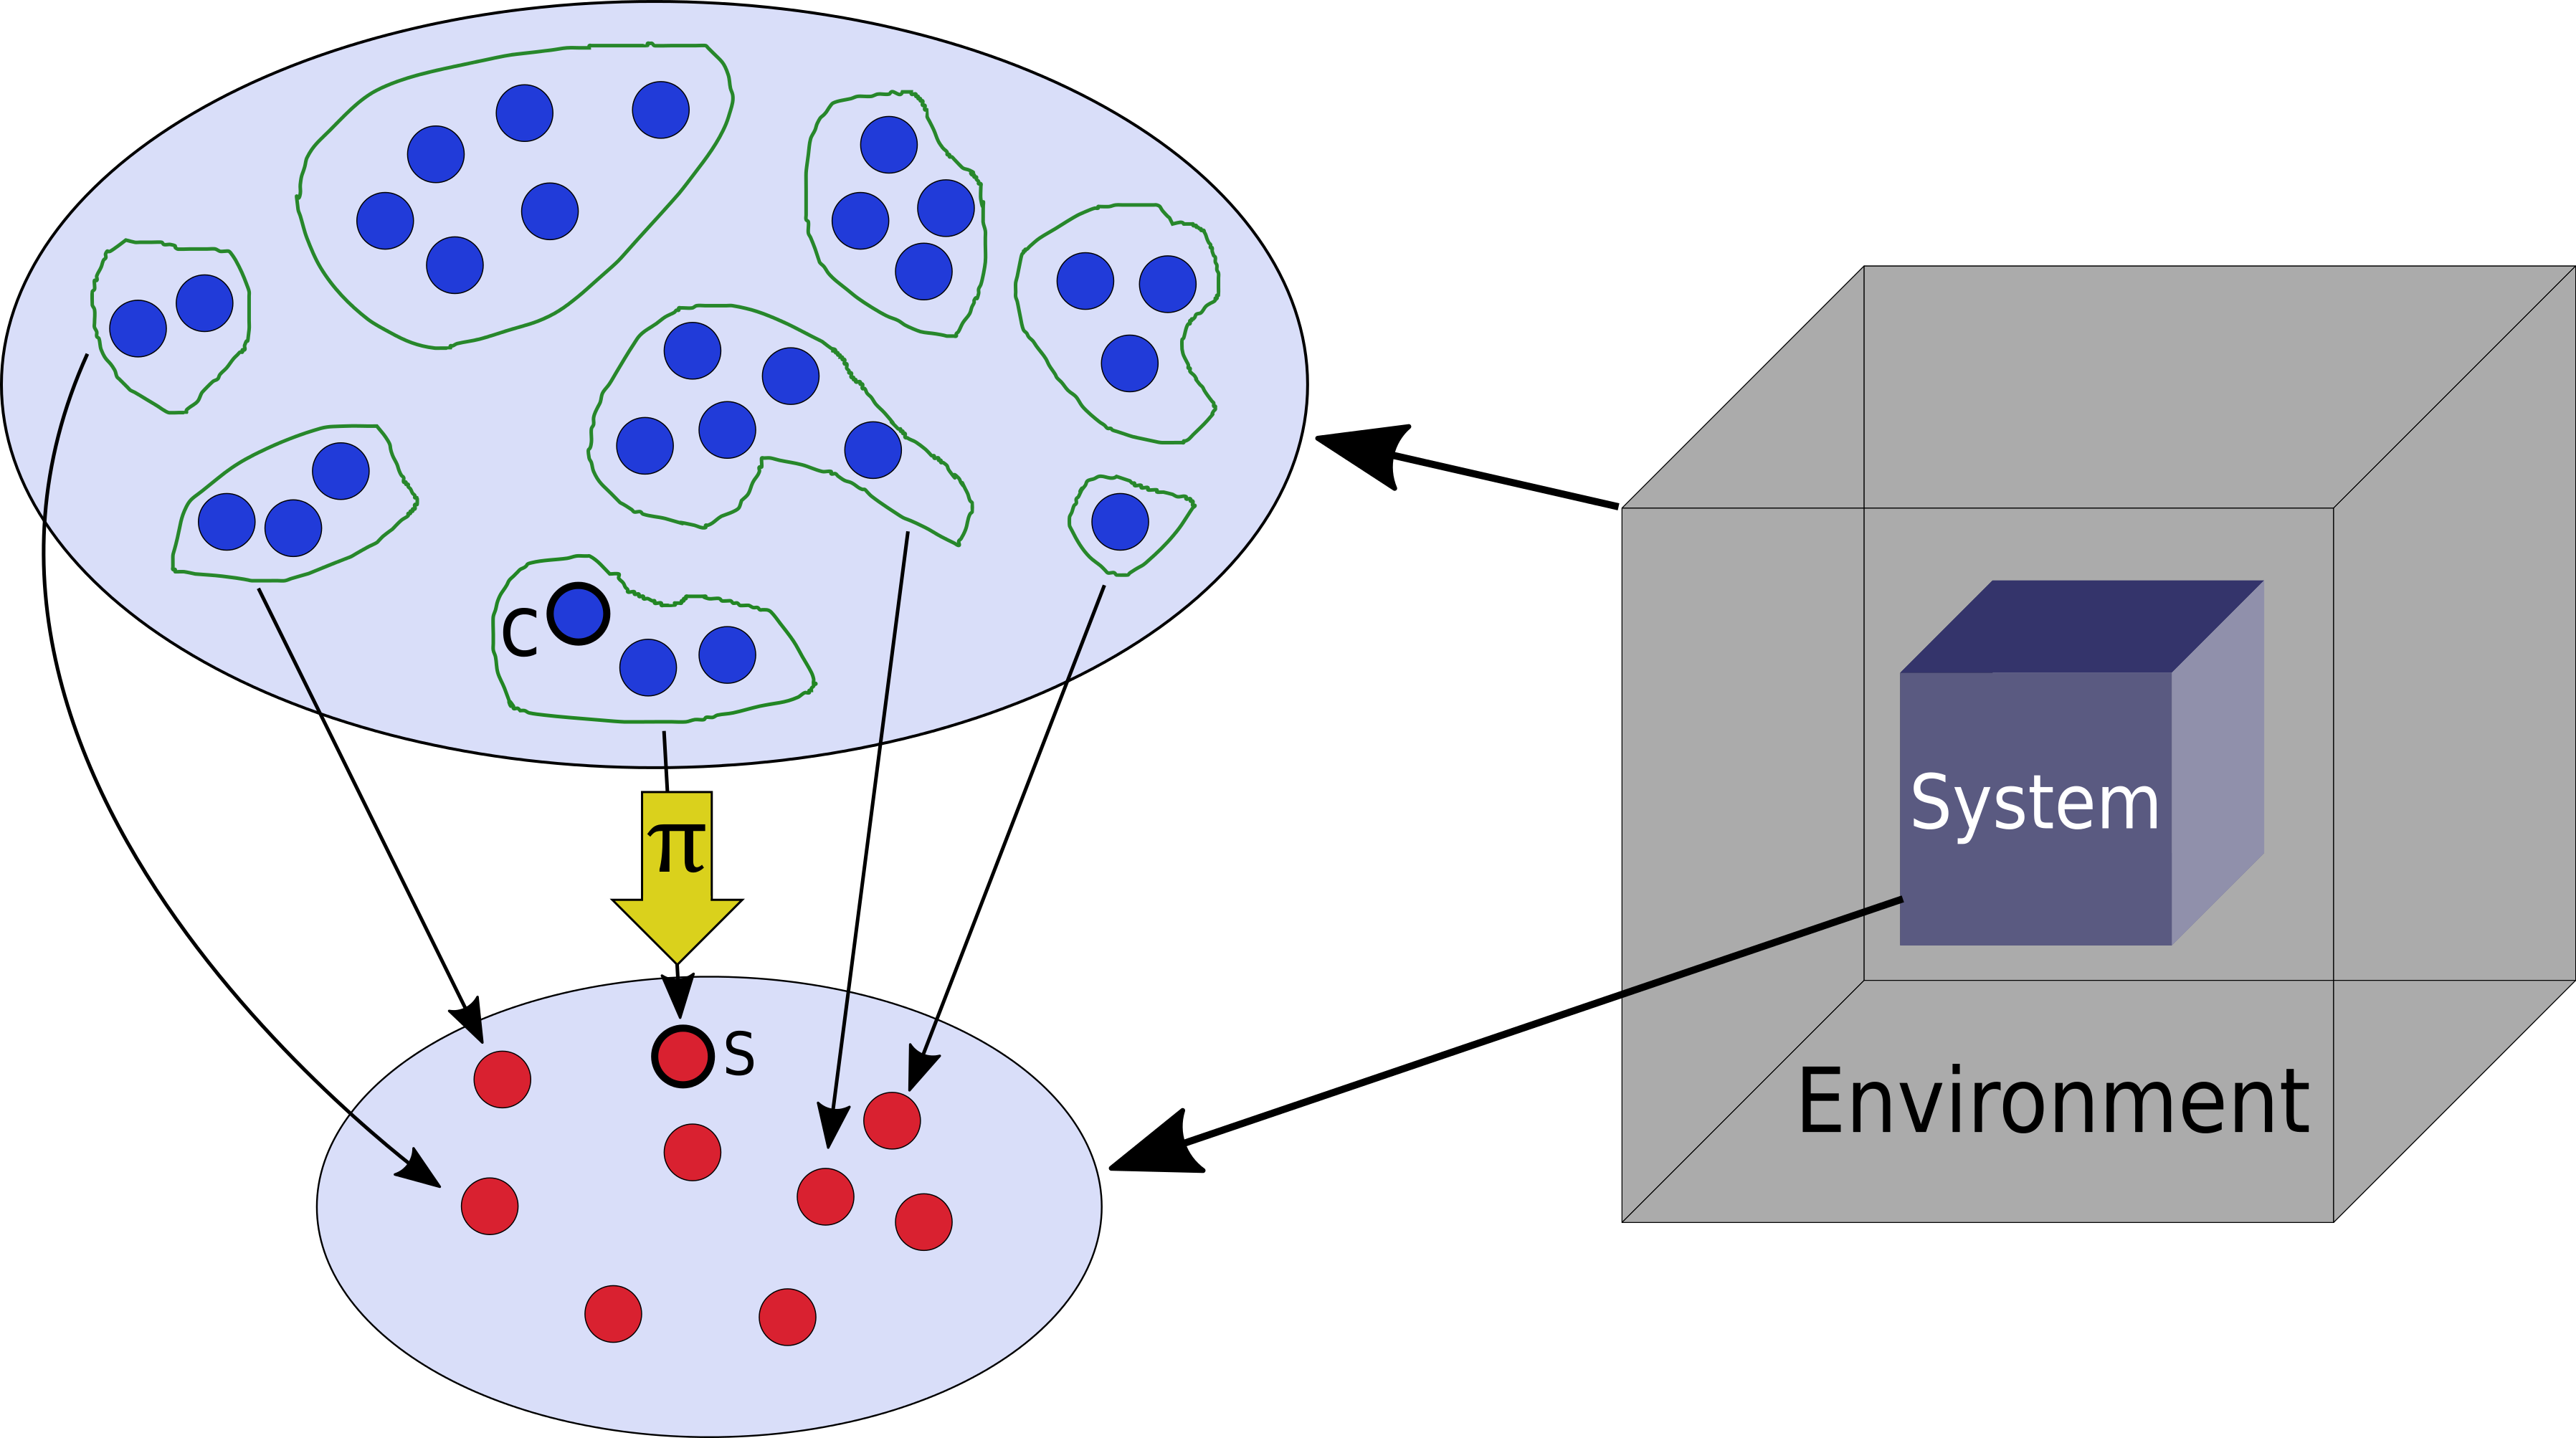 Schematic representation of the configuration space of a system embedded in the environment.